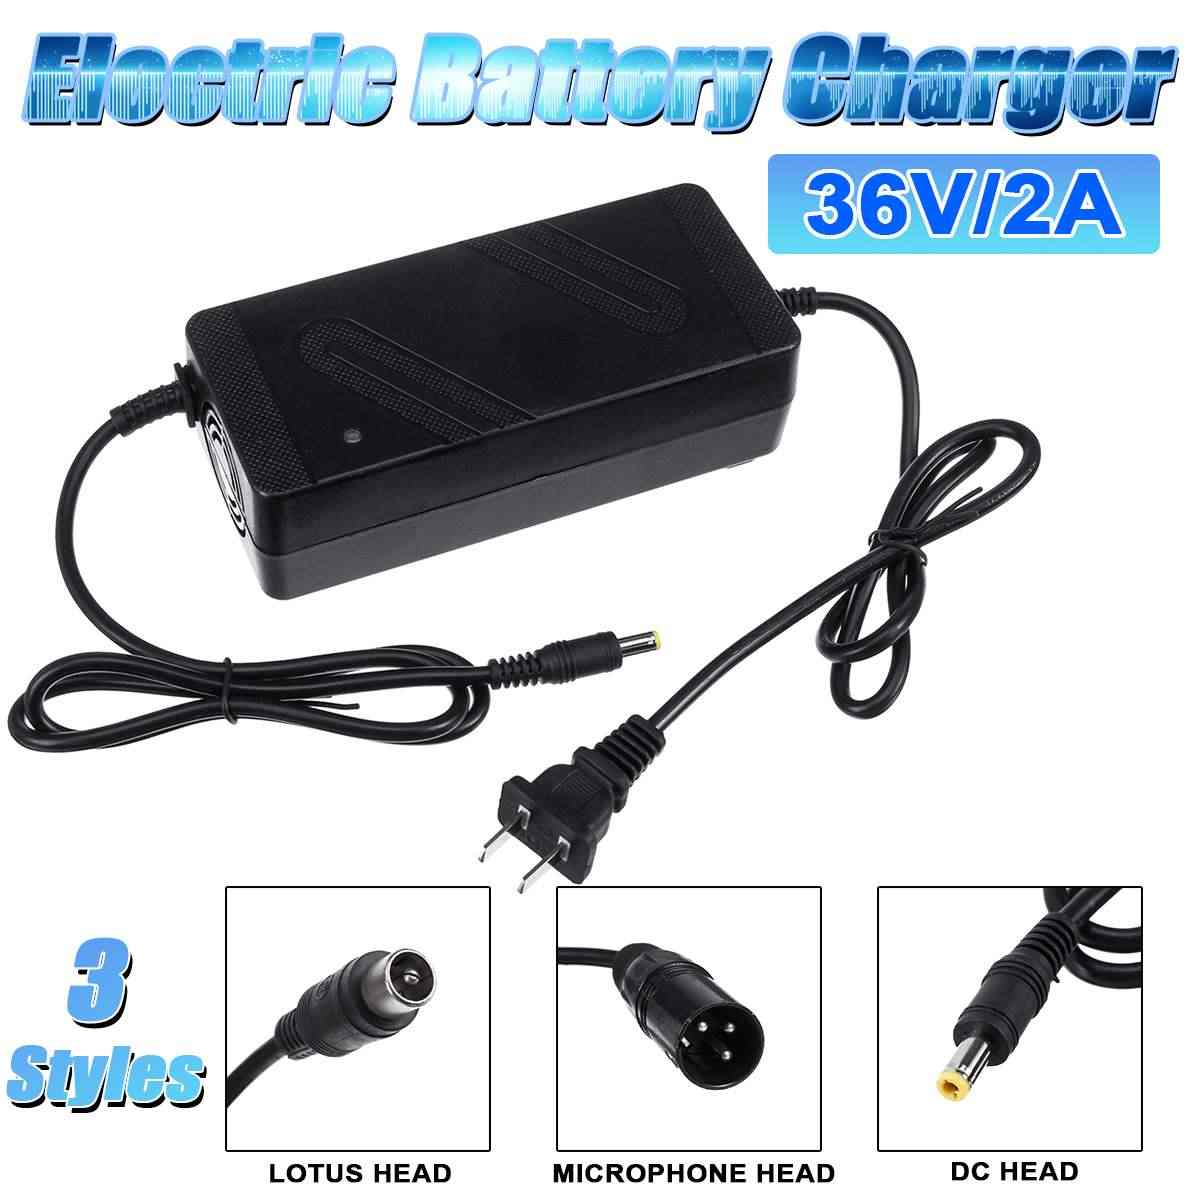 54.6V 2A charger Microphone head for 48V E-bike electric bicycle Li-ion battery